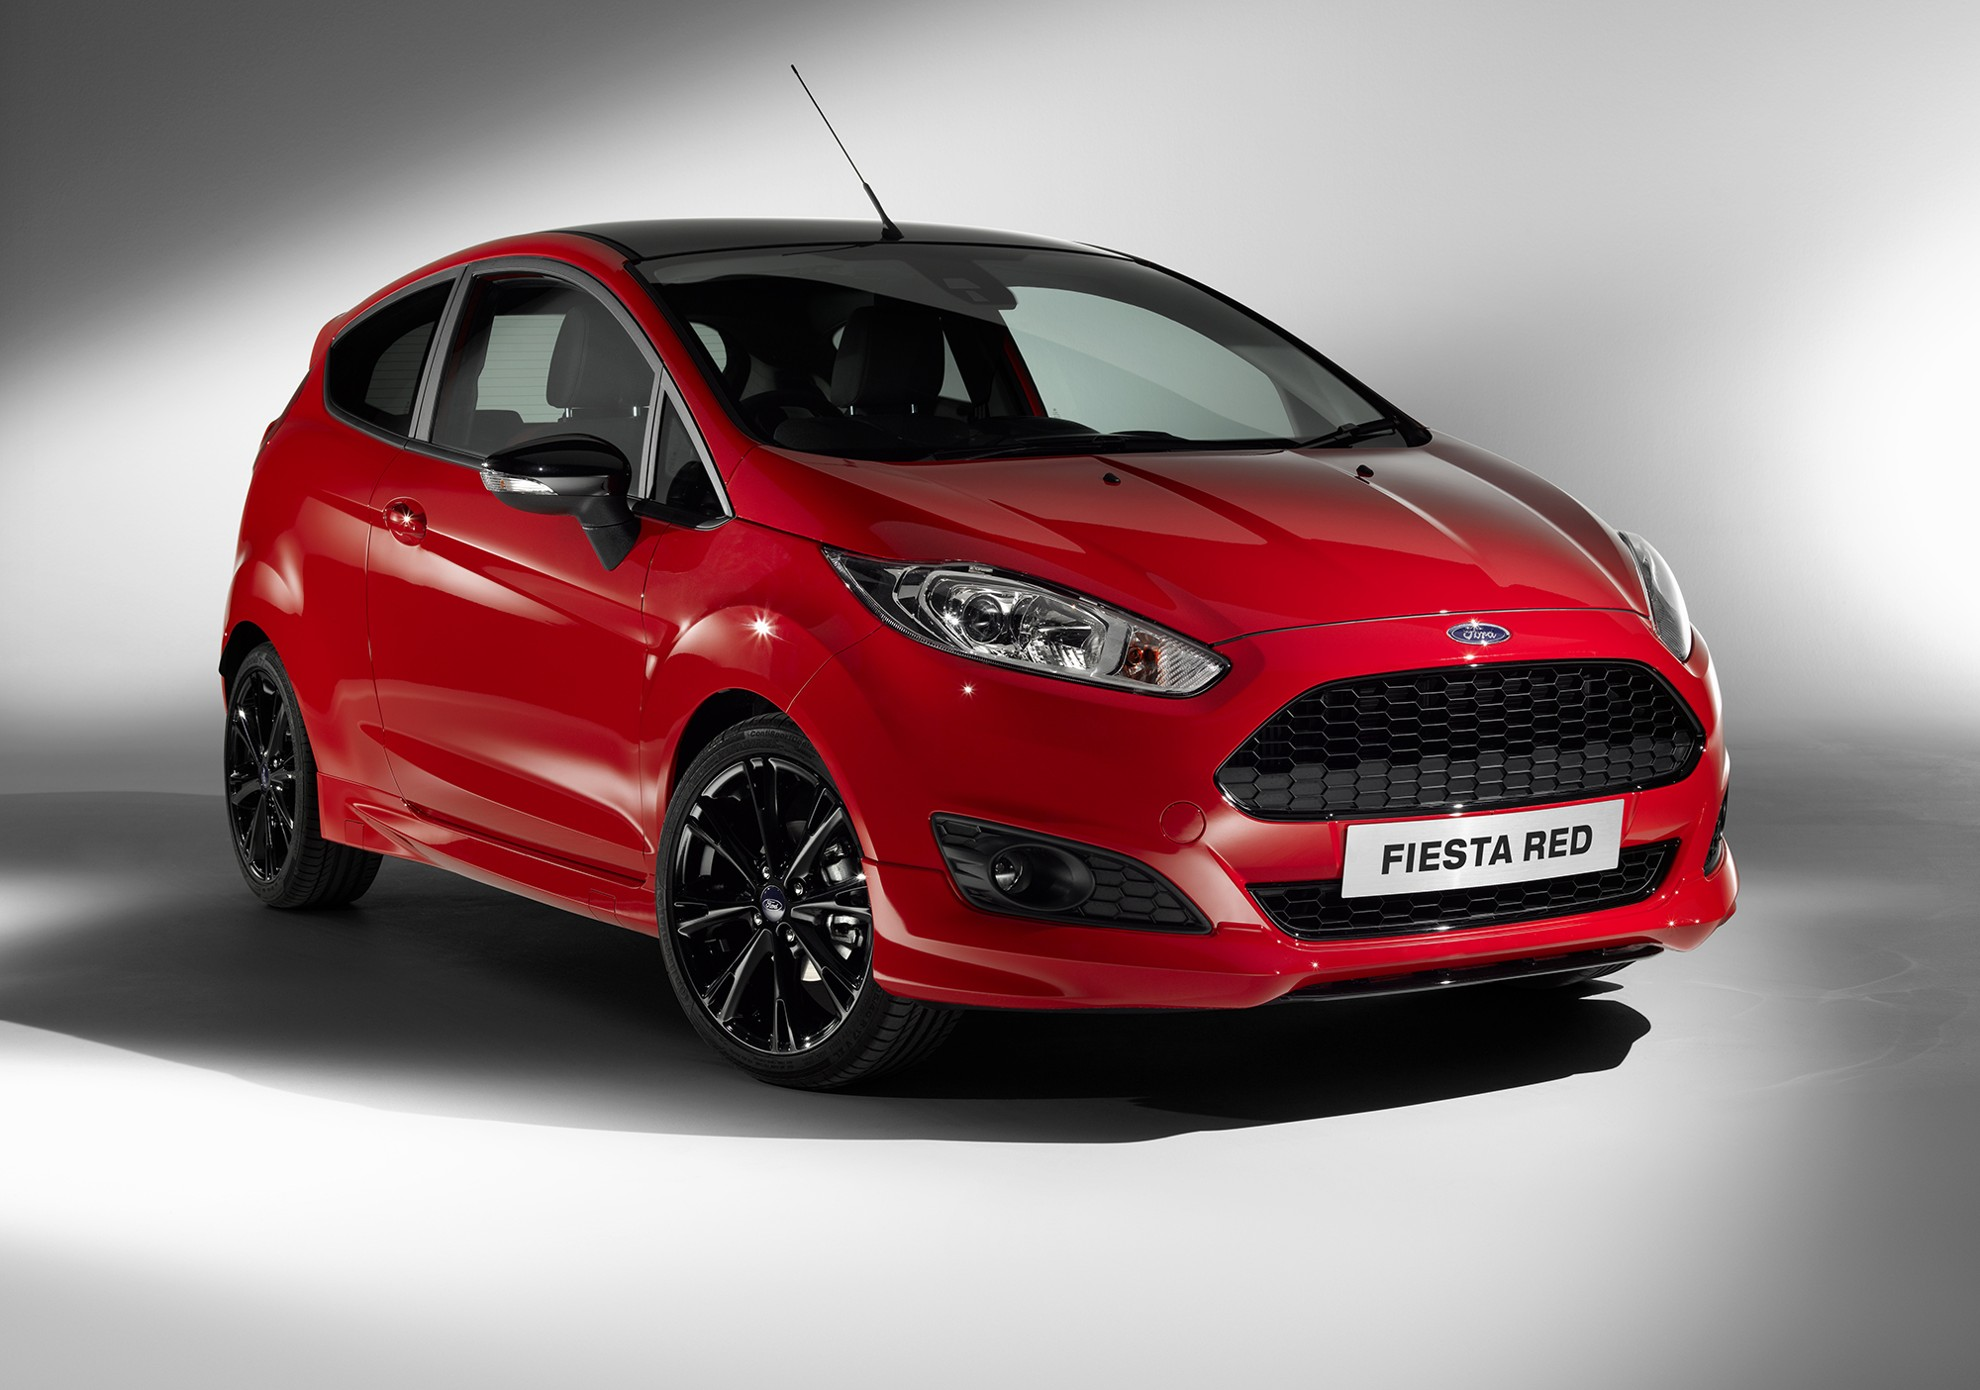 ford fiesta zetec red and black edition. Black Bedroom Furniture Sets. Home Design Ideas